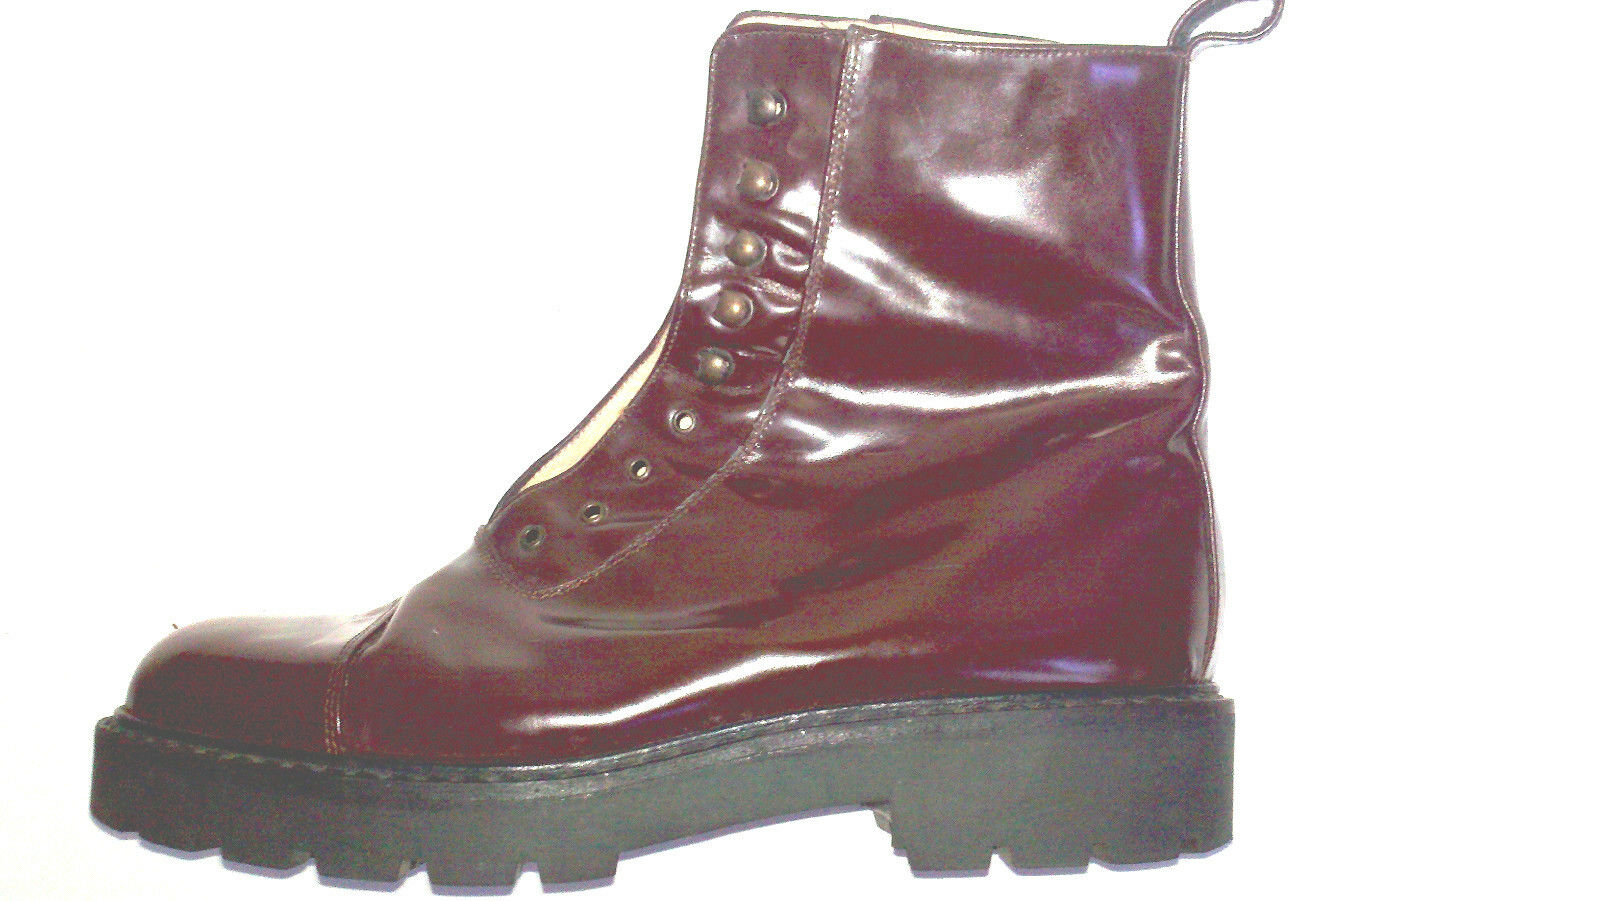 SUSAN MENNIS HANDMADE ITALIAN BOOTS BROWN PATENT LEATHER ANKLE S 6 steam punk